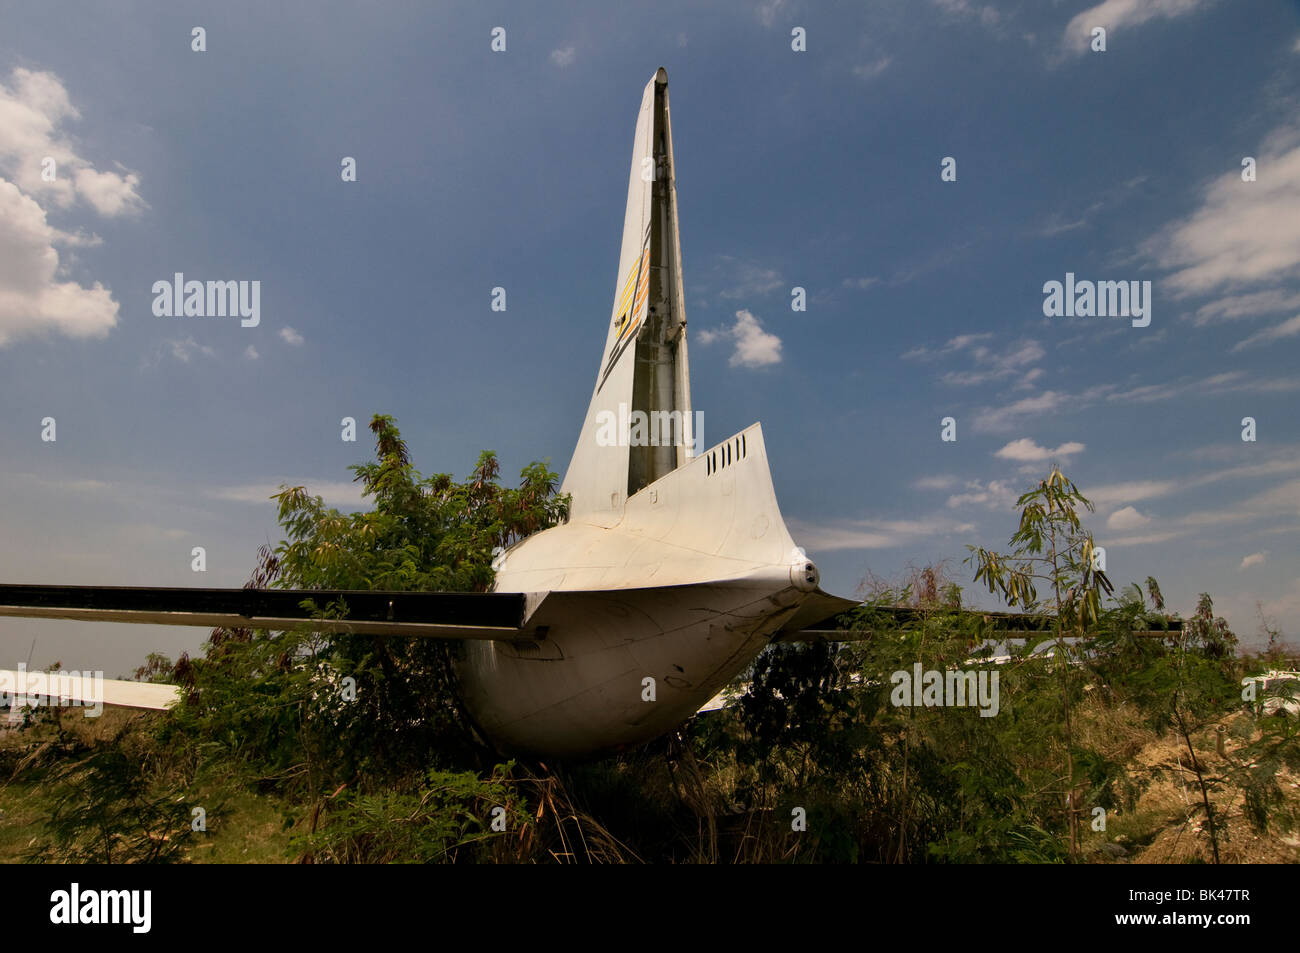 An airplane crash wreckage in Haiti - Stock Image